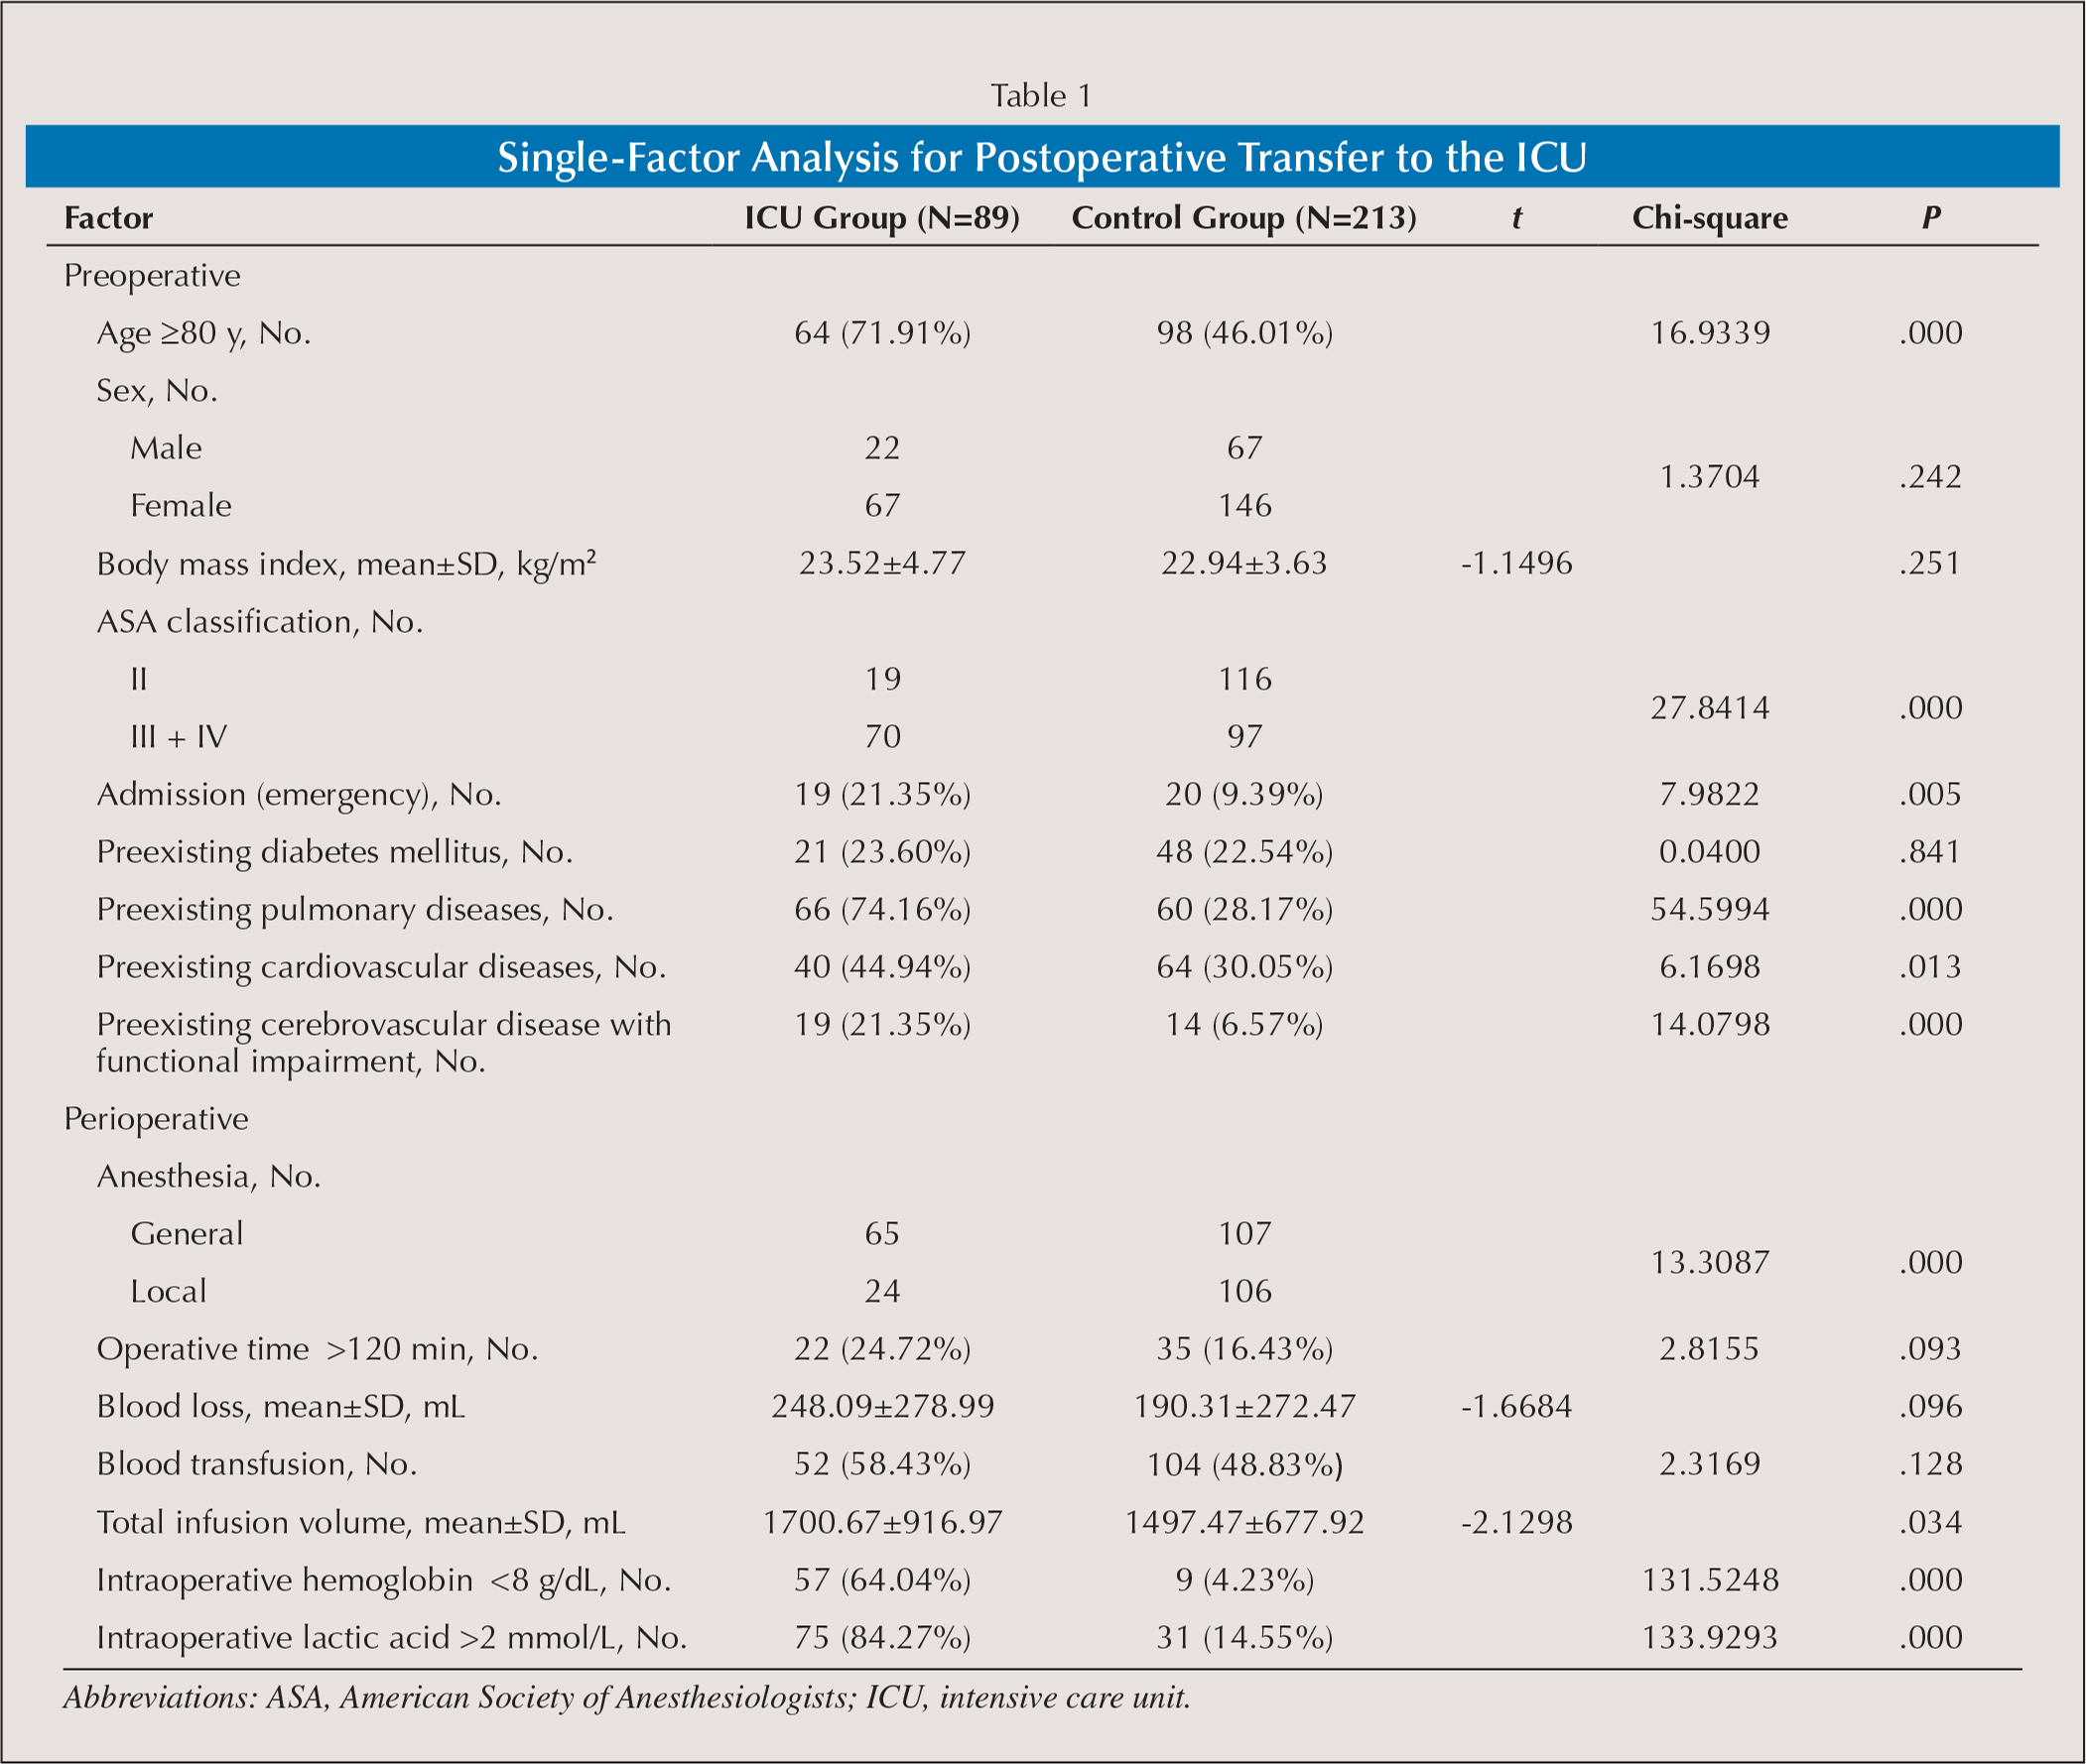 Single-Factor Analysis for Postoperative Transfer to the ICU